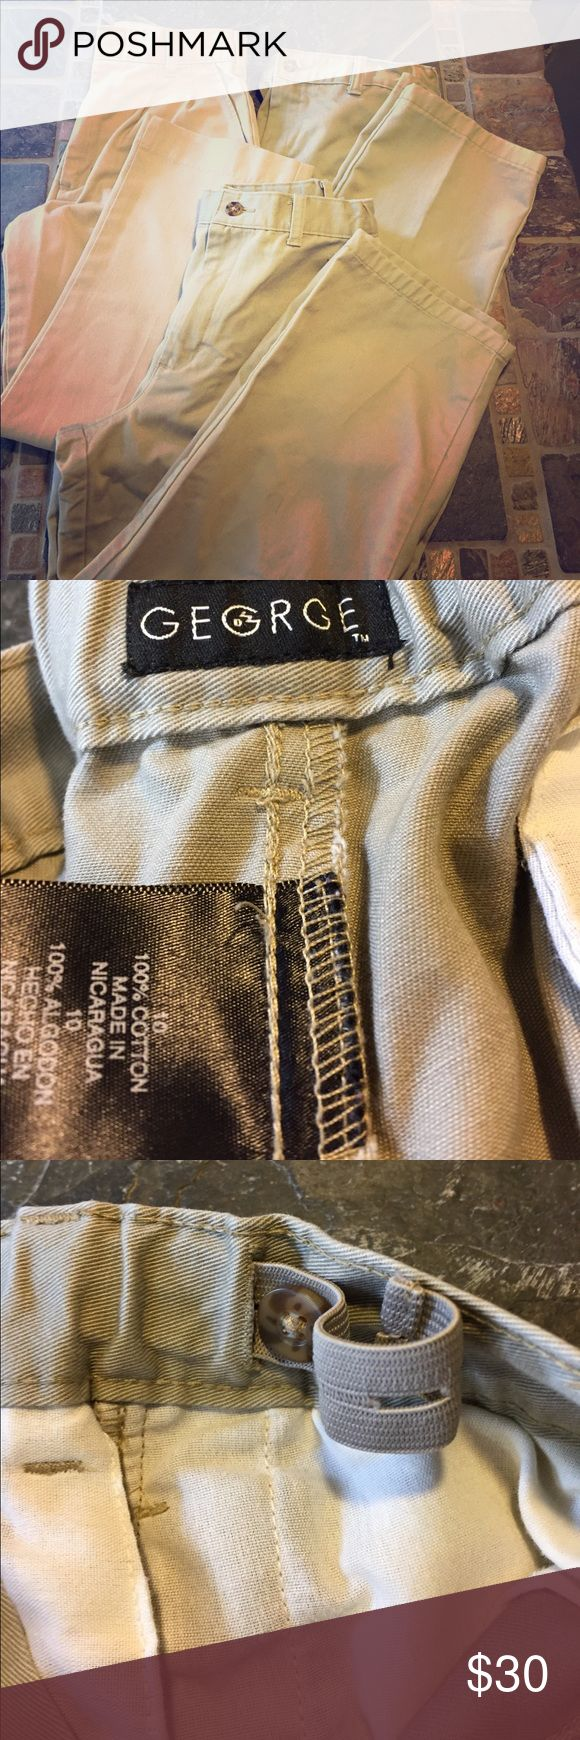 School Uniform Pants 3 pair of boys size 10 REG. Two pair are the same with adjustable waist (George). They have some wear, light snags, and some small pen marks on a pair. Could be worn for church or special occasions.  My son attends a private school. George Bottoms Casual